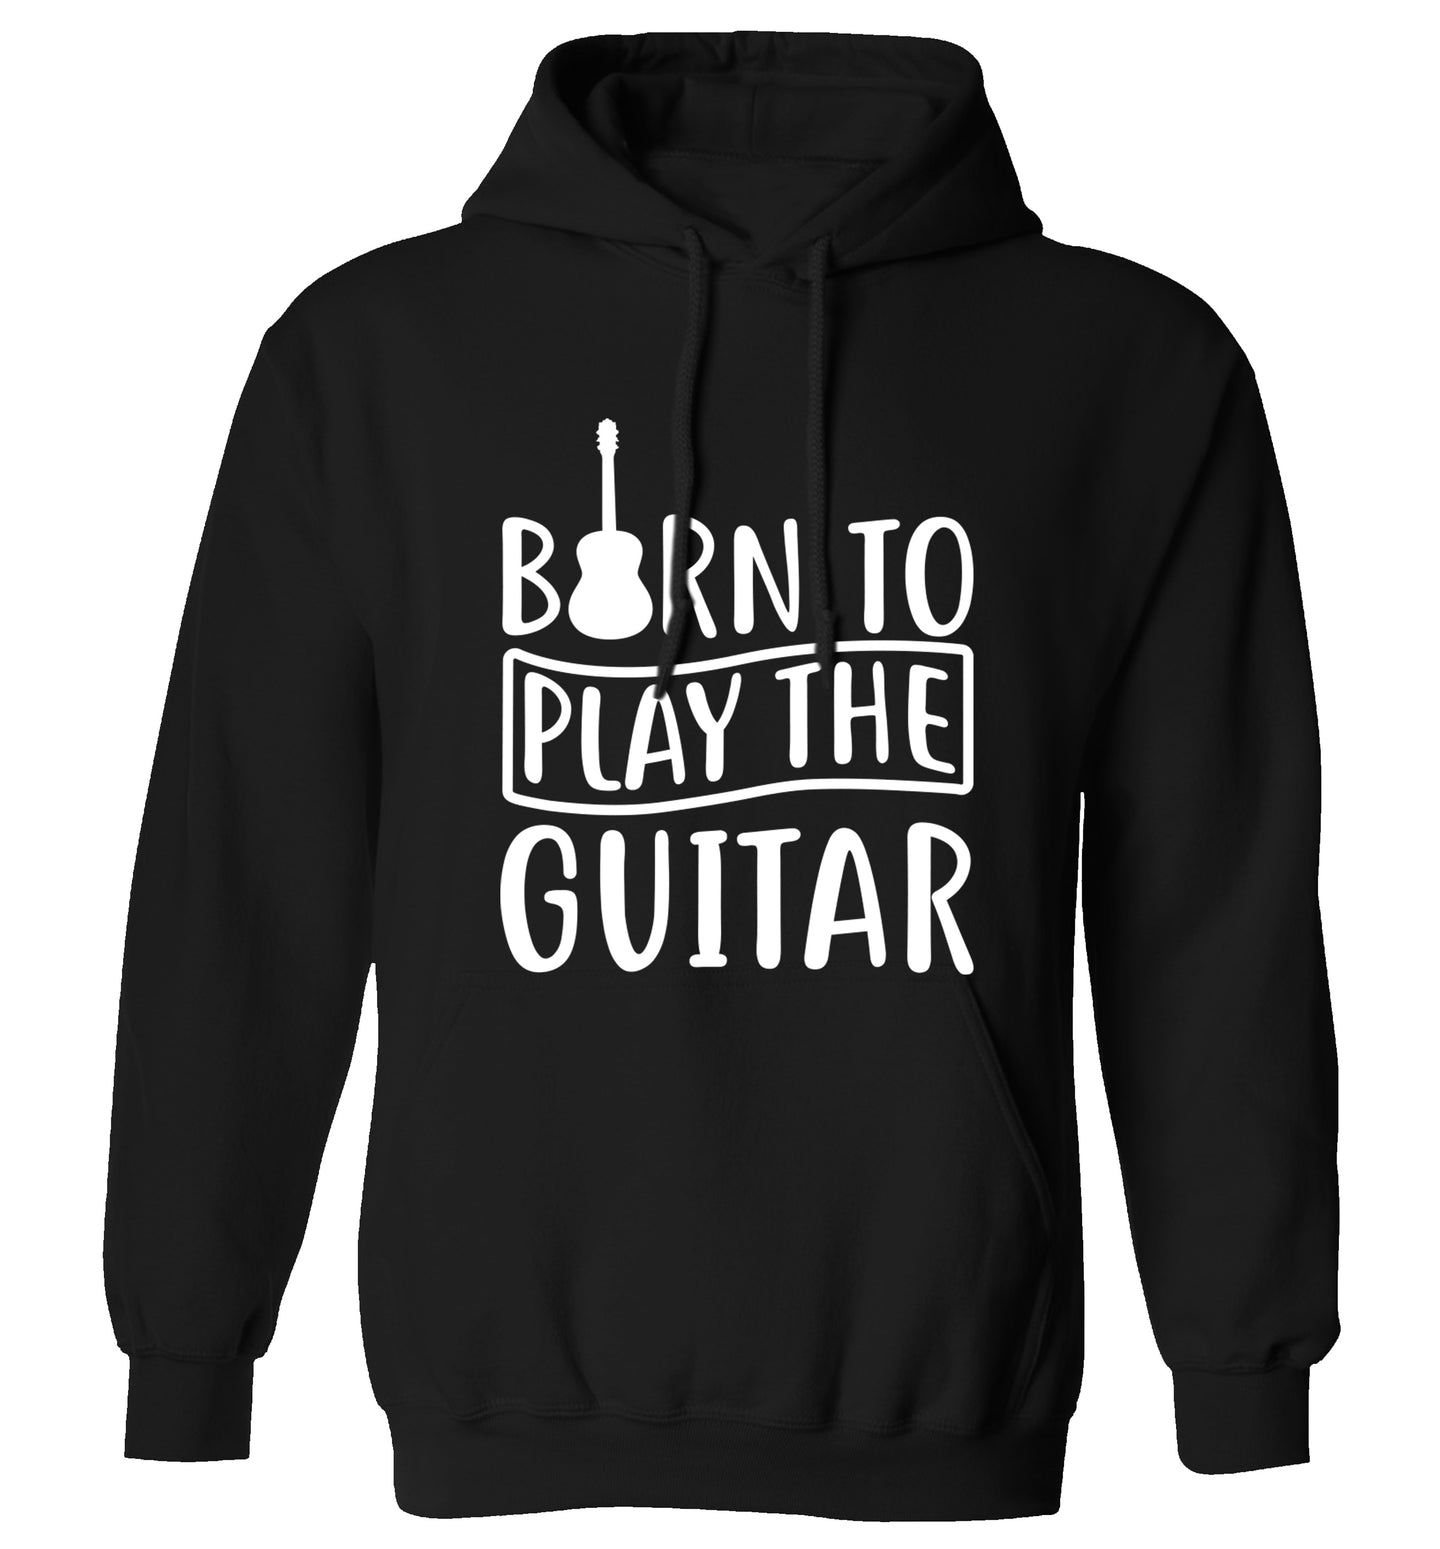 Born to play the guitar adults unisex black hoodie 2XL